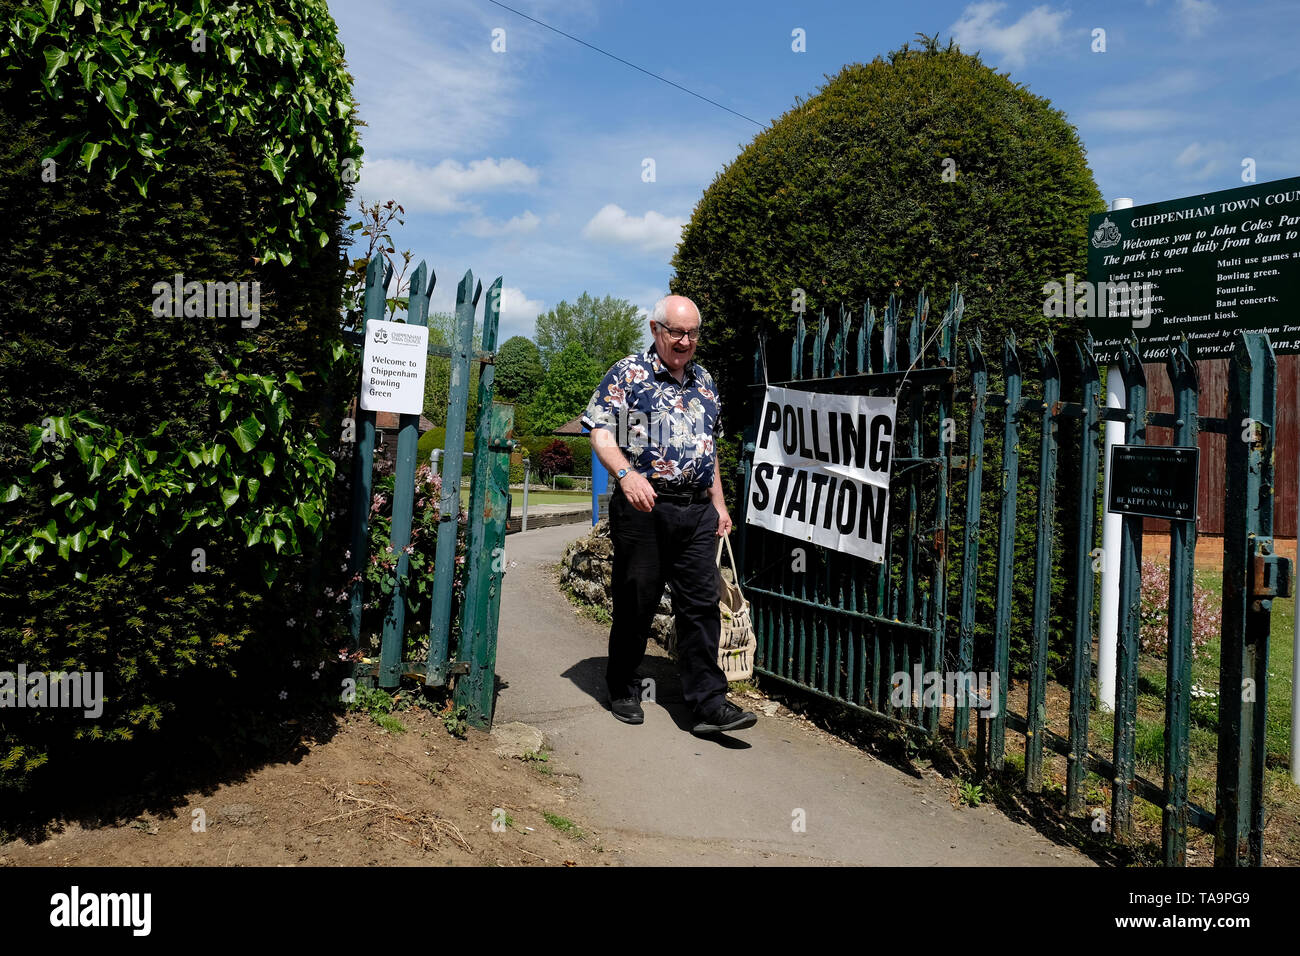 Chippenham, UK. 23rd May, 2019. A man going to vote in the 2019 European Parliament elections is pictured as he leaves a polling station set up in a Lawn Bowls club in Chippenham, Wiltshire. Credit:  Lynchpics/Alamy Live News - Stock Image